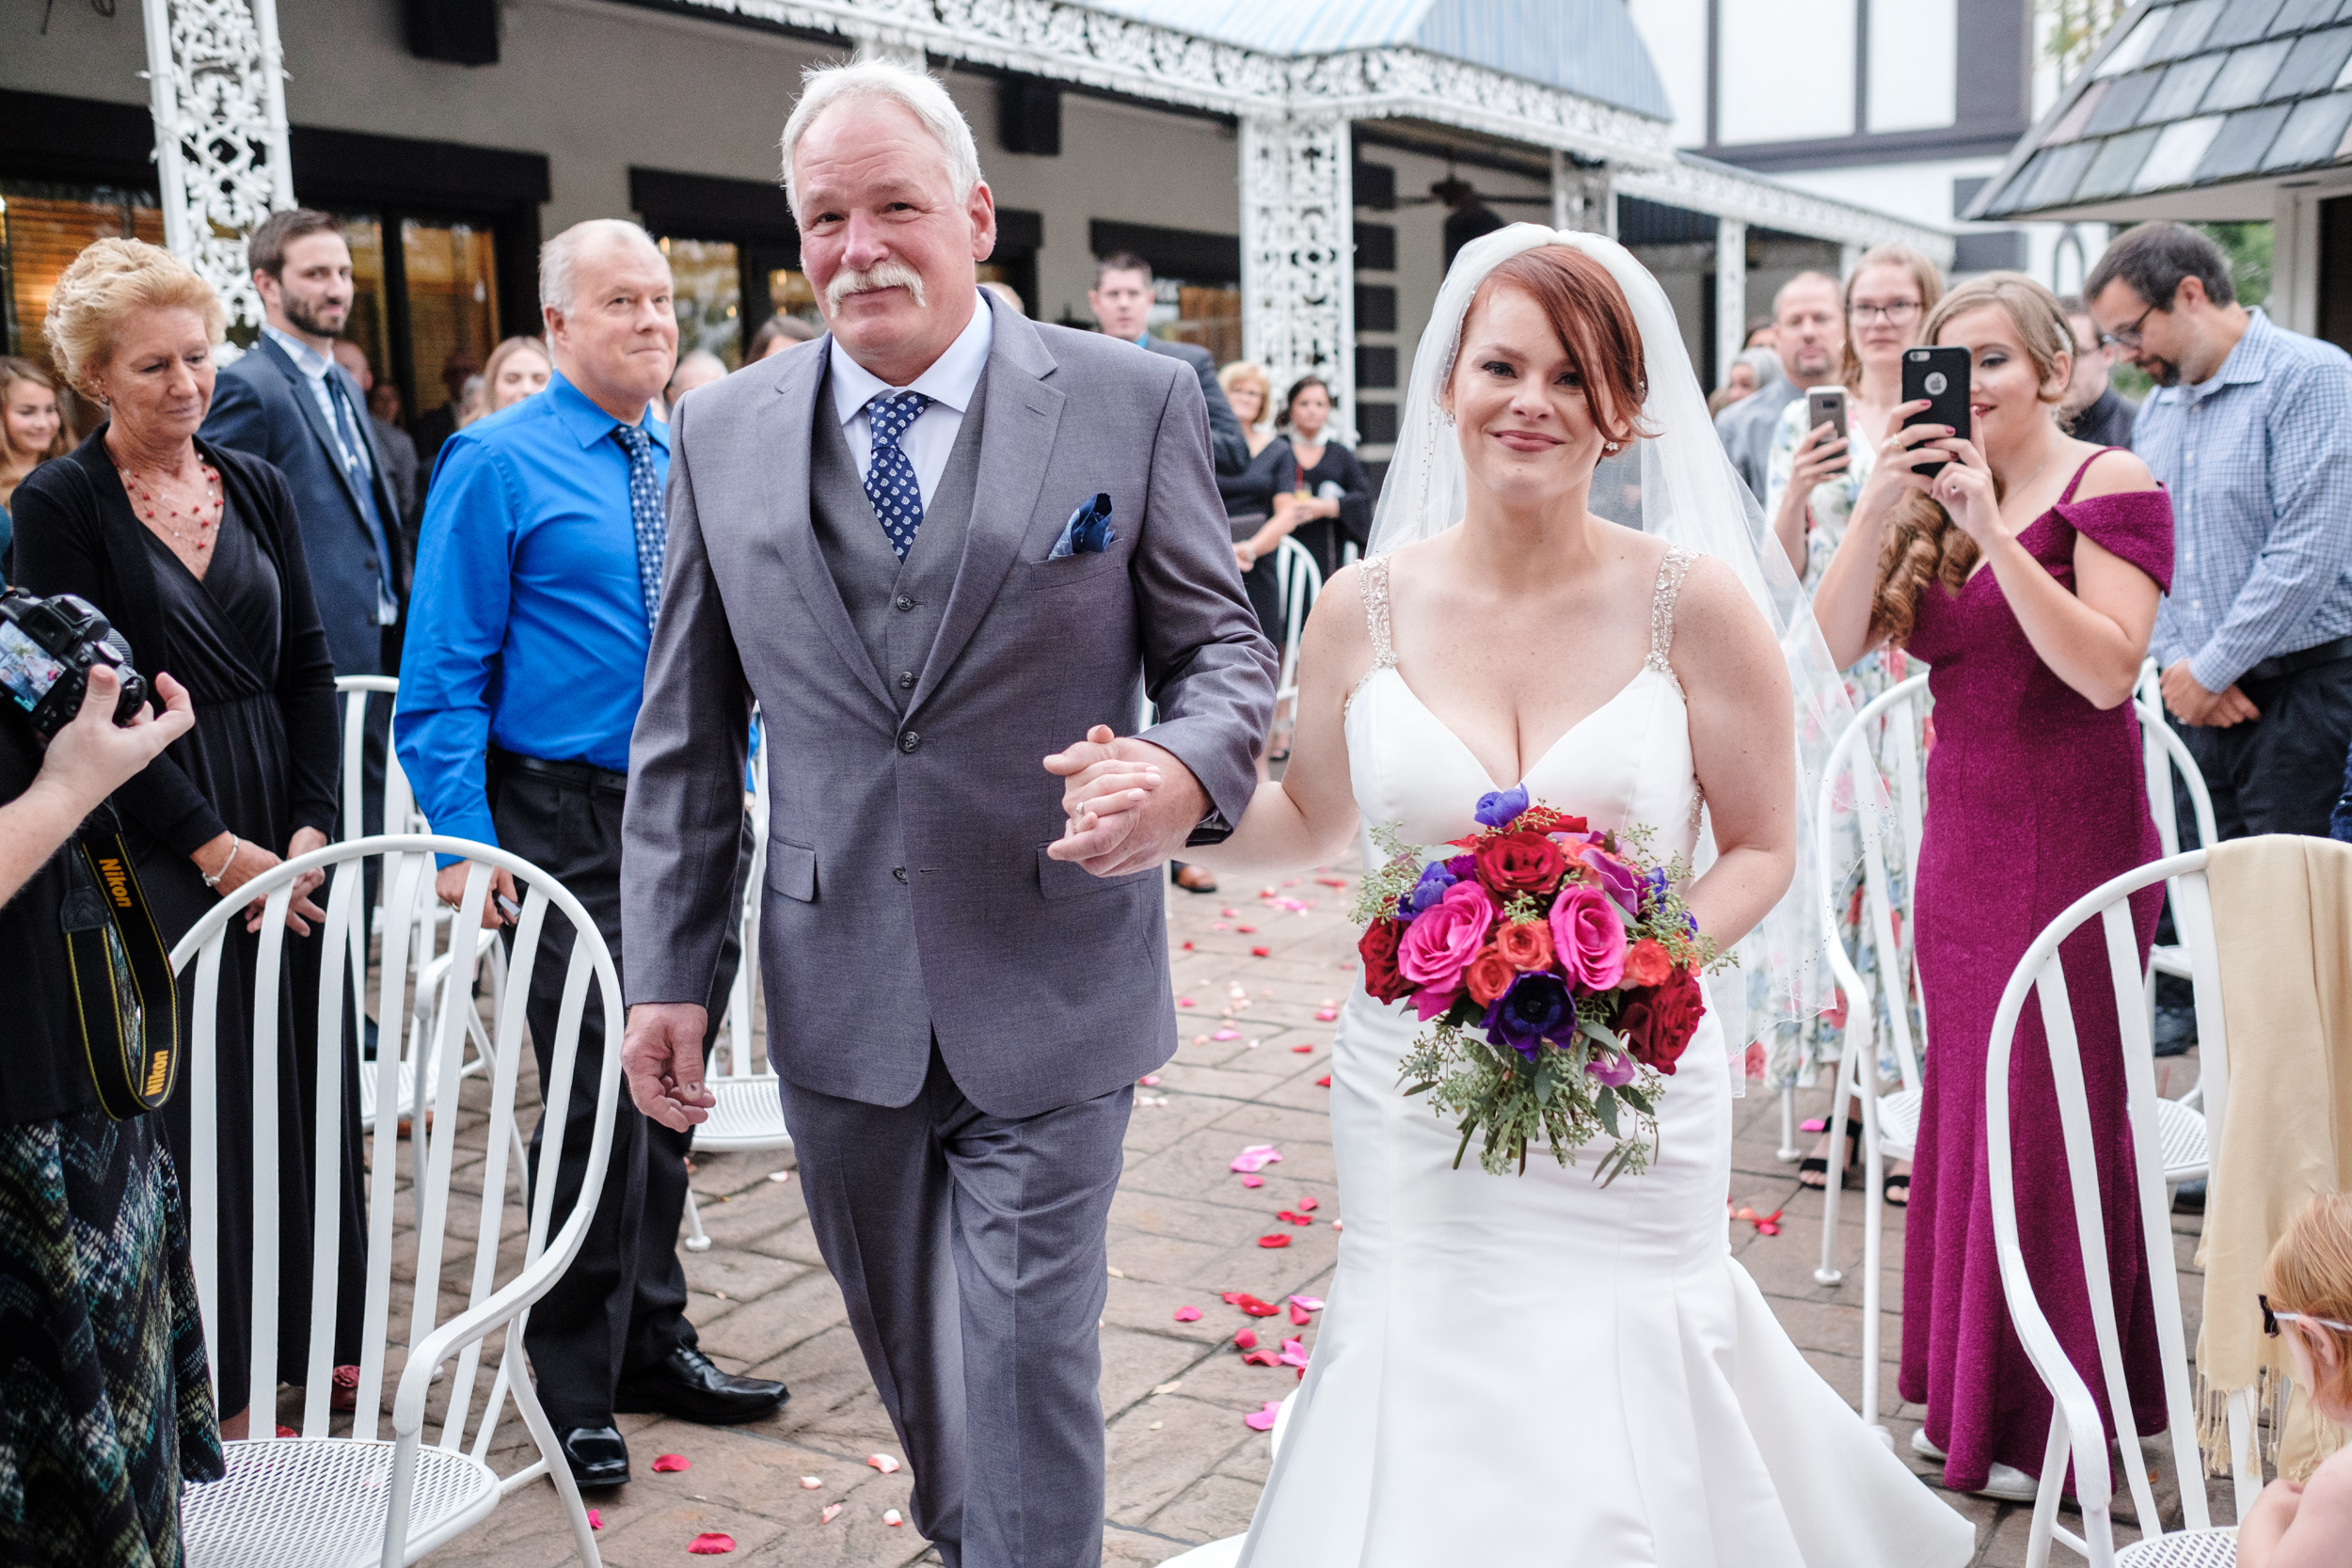 bride in white dress with colorful flower walking down aisle to be married